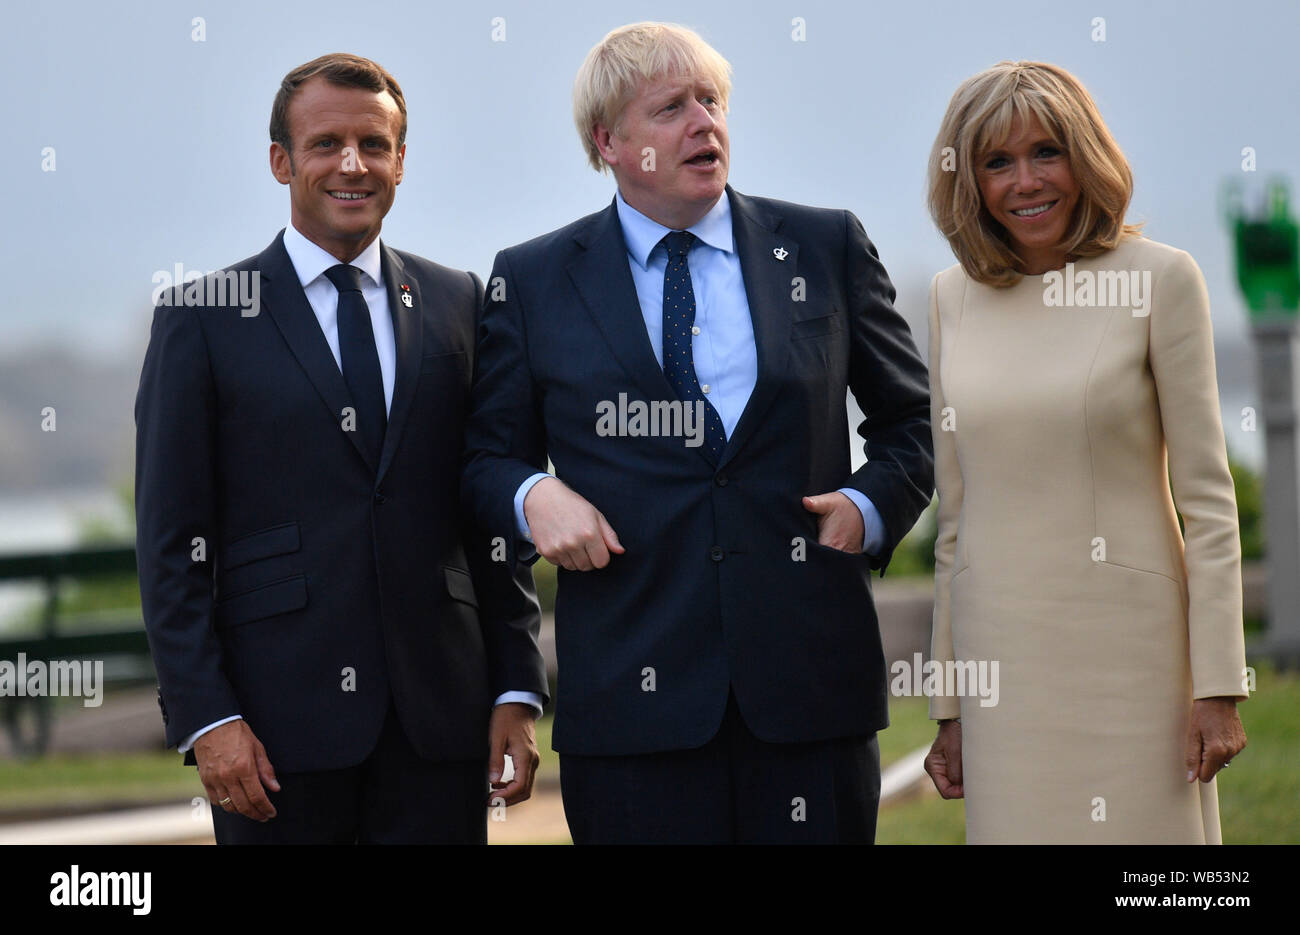 French President Emmanuel Macron And His Wife Brigitte Trogneux With Prime Minister Boris Johnson Centre At The Official Welcome During The G7 Summit In Biarritz France Stock Photo Alamy